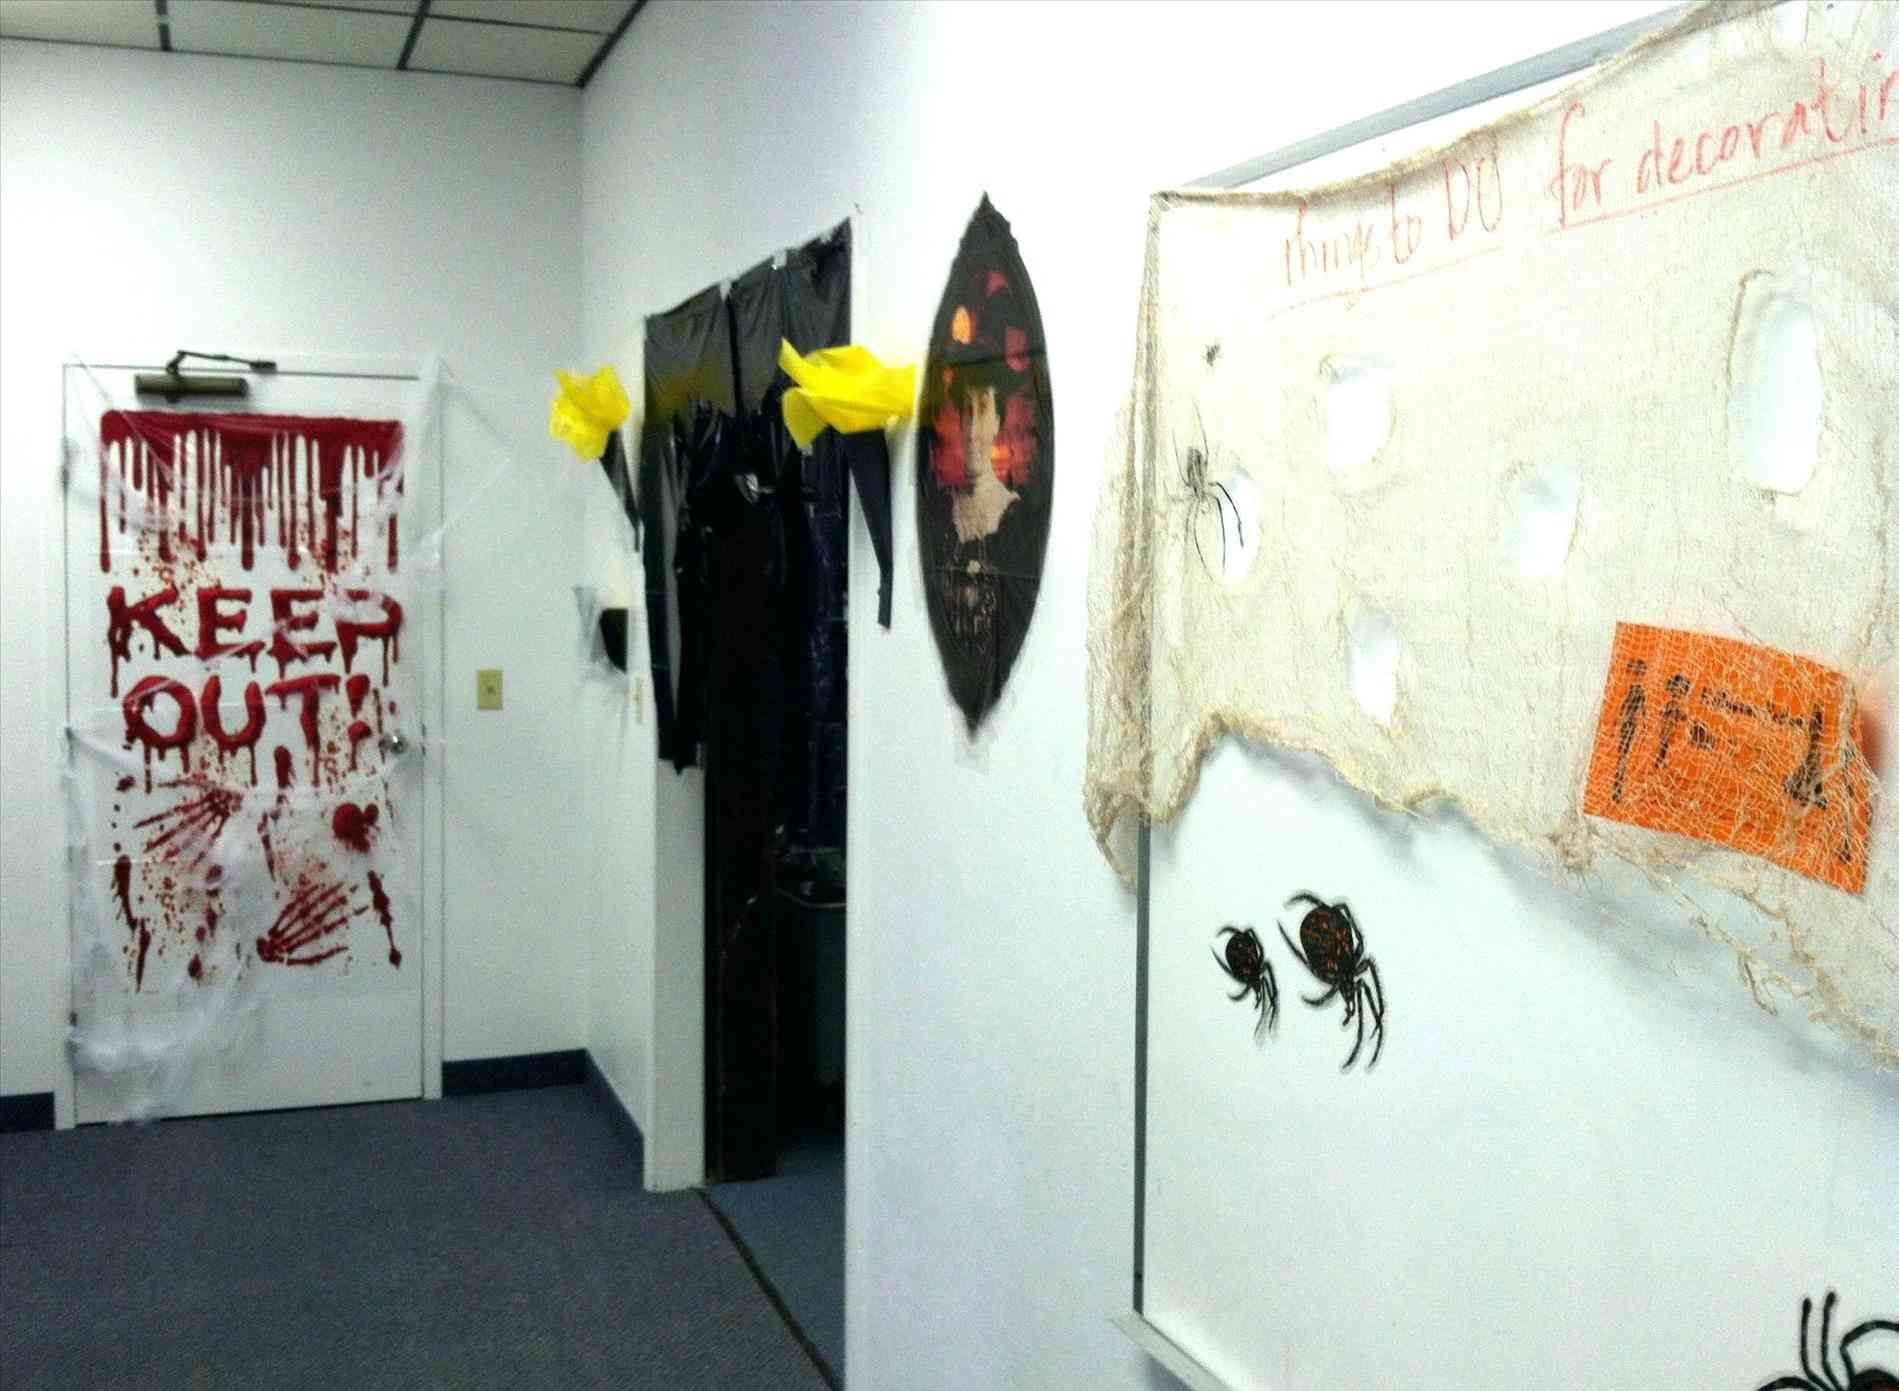 New Post halloween decoration ideas for office visit Bobayule - halloween decorations for the office